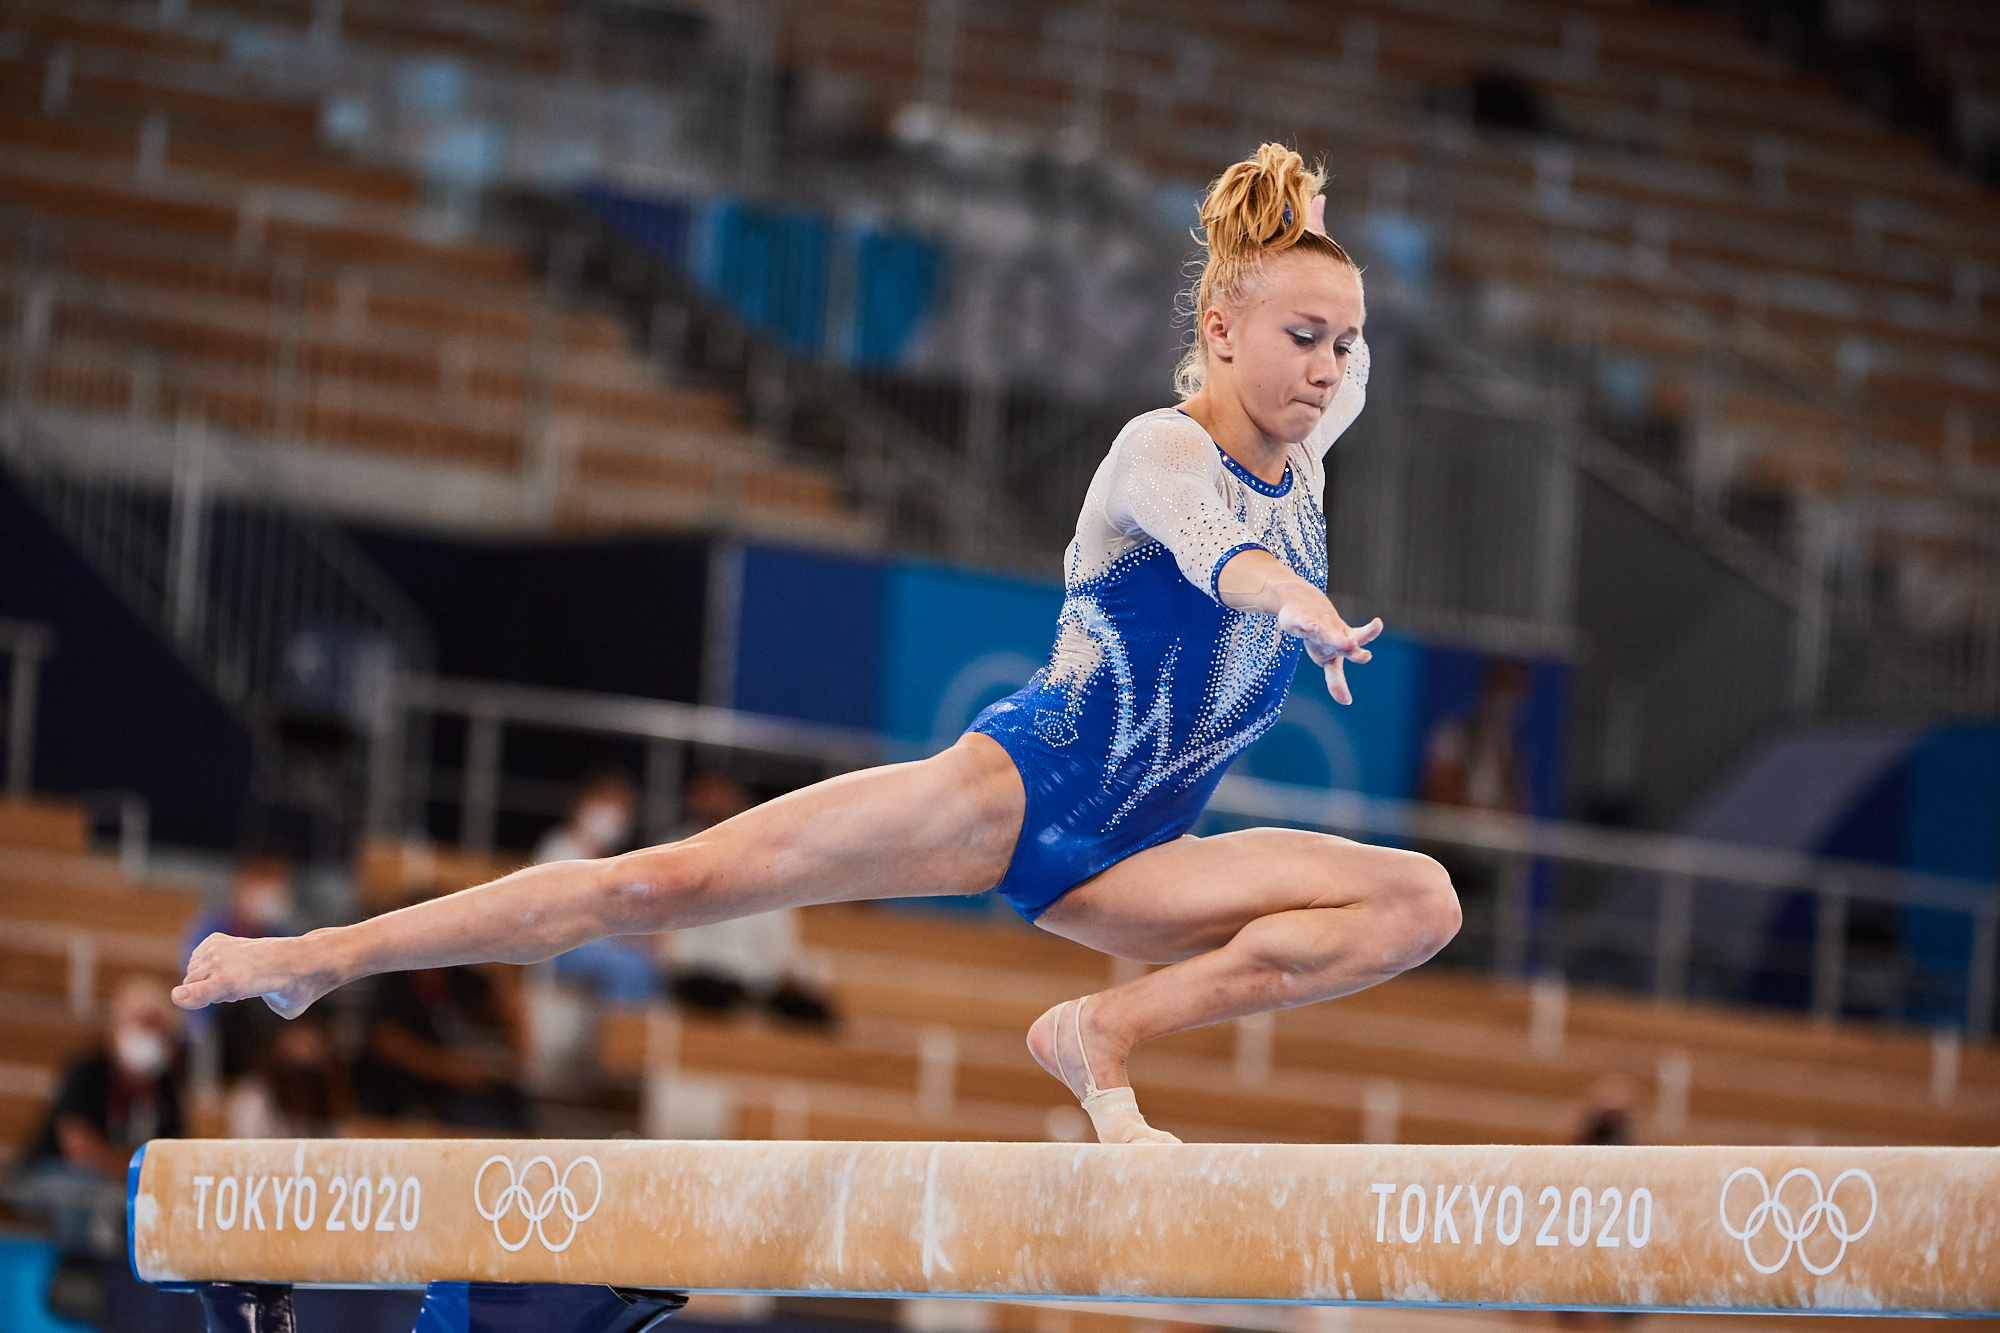 Photo of ROC's Viktoriia Listunova, delivers a strong performance on the balance beam in Rotation 3 of the women's gymnastics final during the 2020 Tokyo Olympics at Ariake Gymnastics Center in Tokyo, Japan.